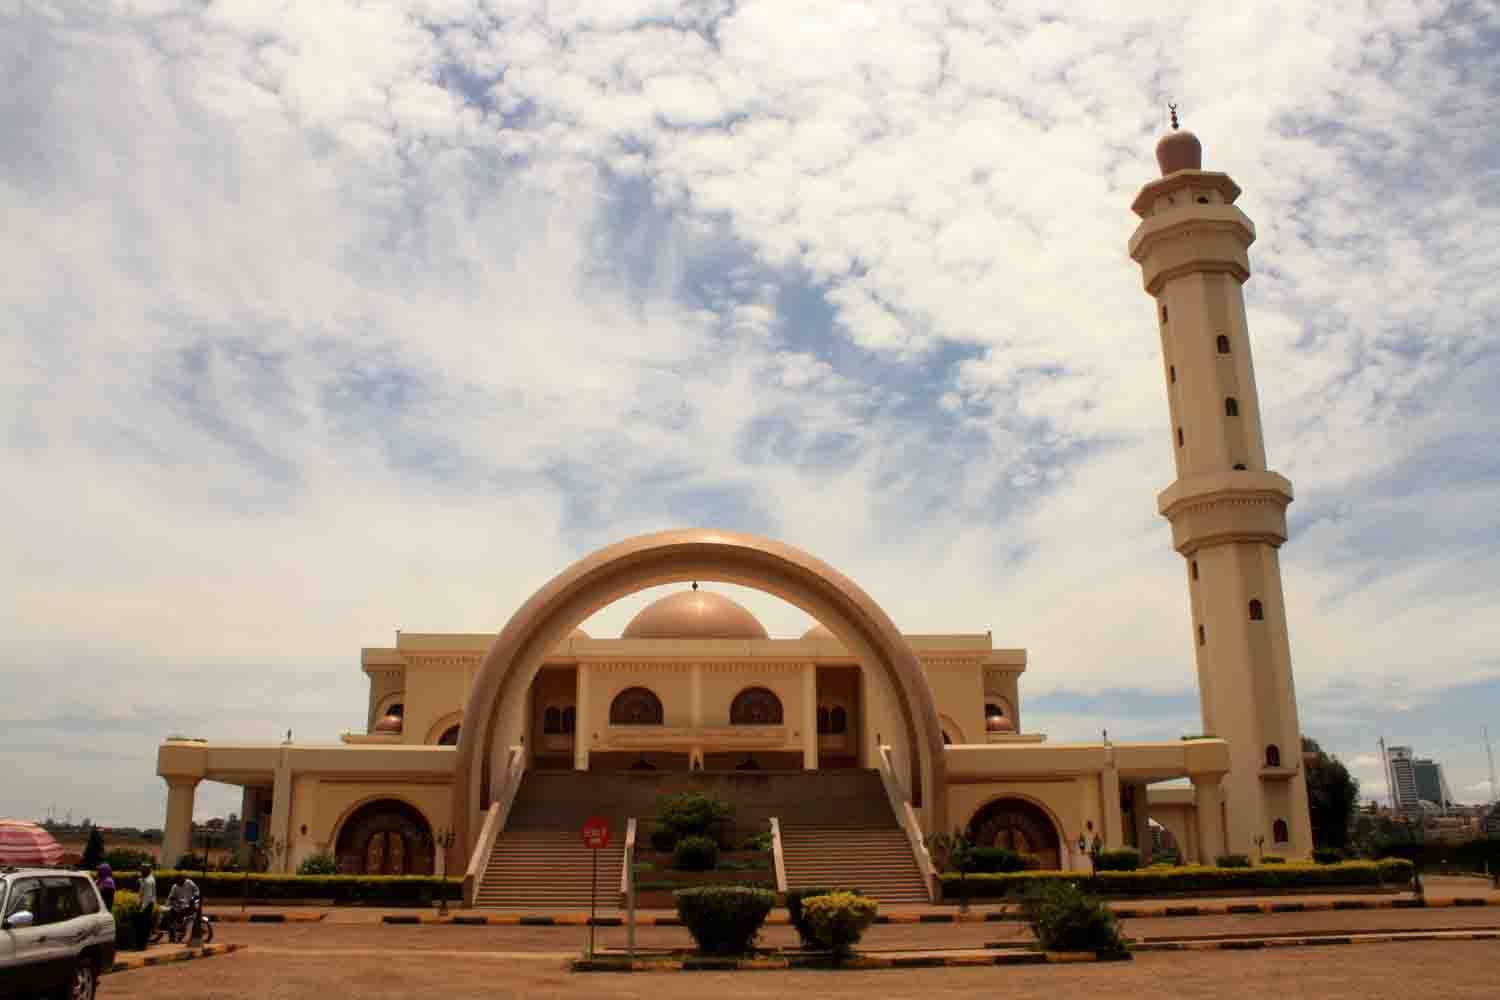 images/Places/ghaddafi-mosque-old-kampala.jpg